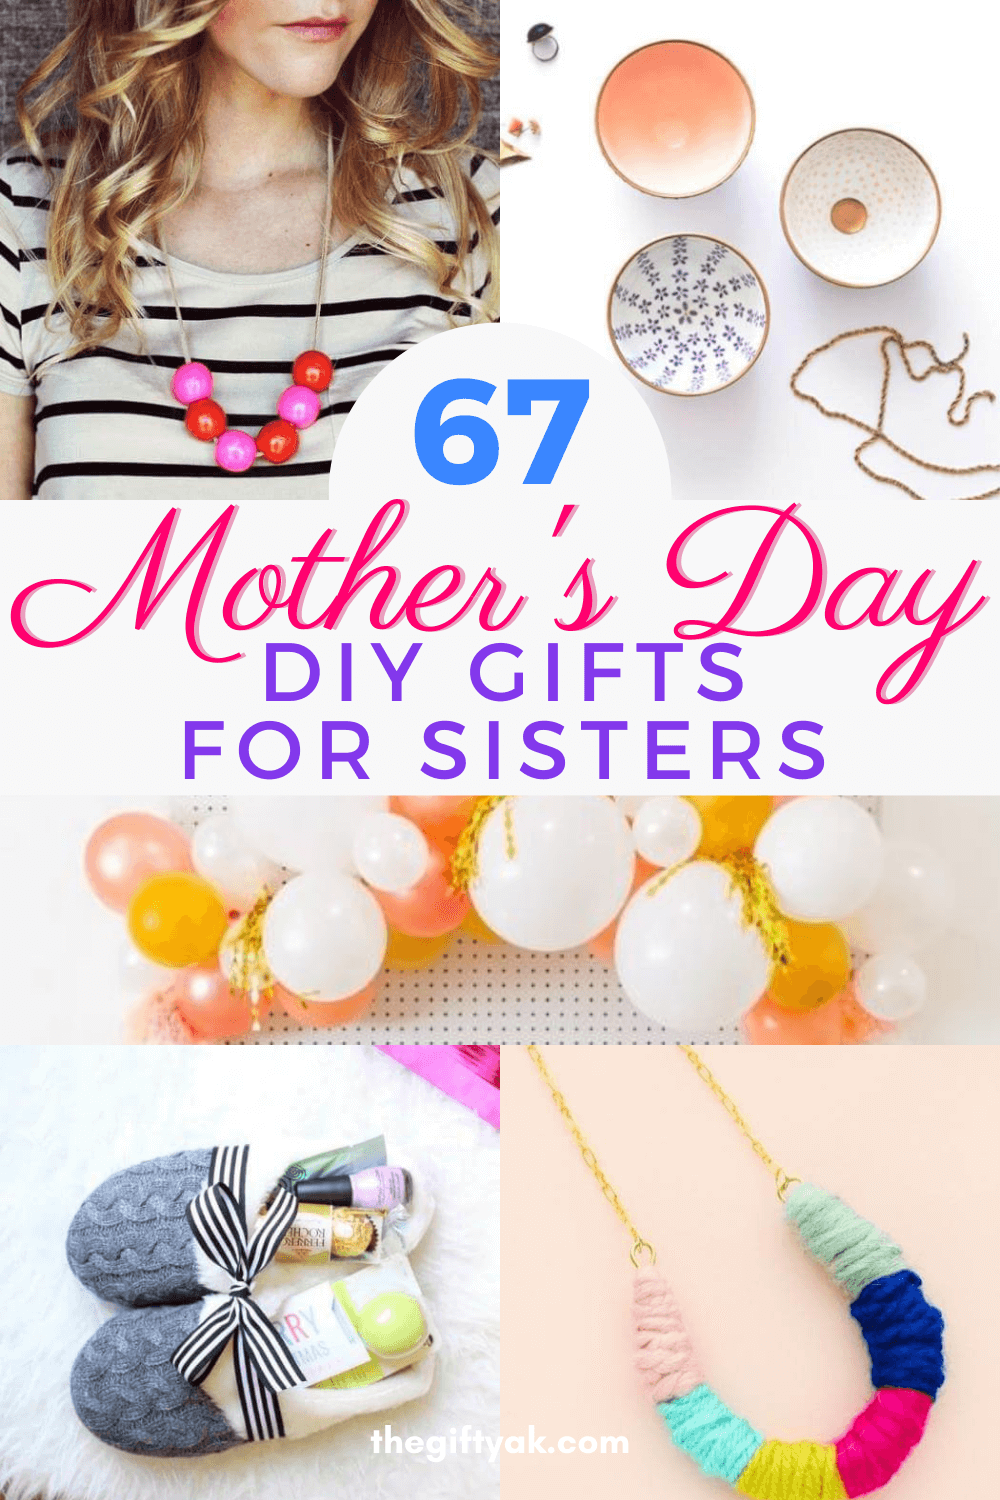 67 Sisters Mothers Day DIY Homemade Craft Gift Inspiration Pinterest How to Make Tutorial Guide